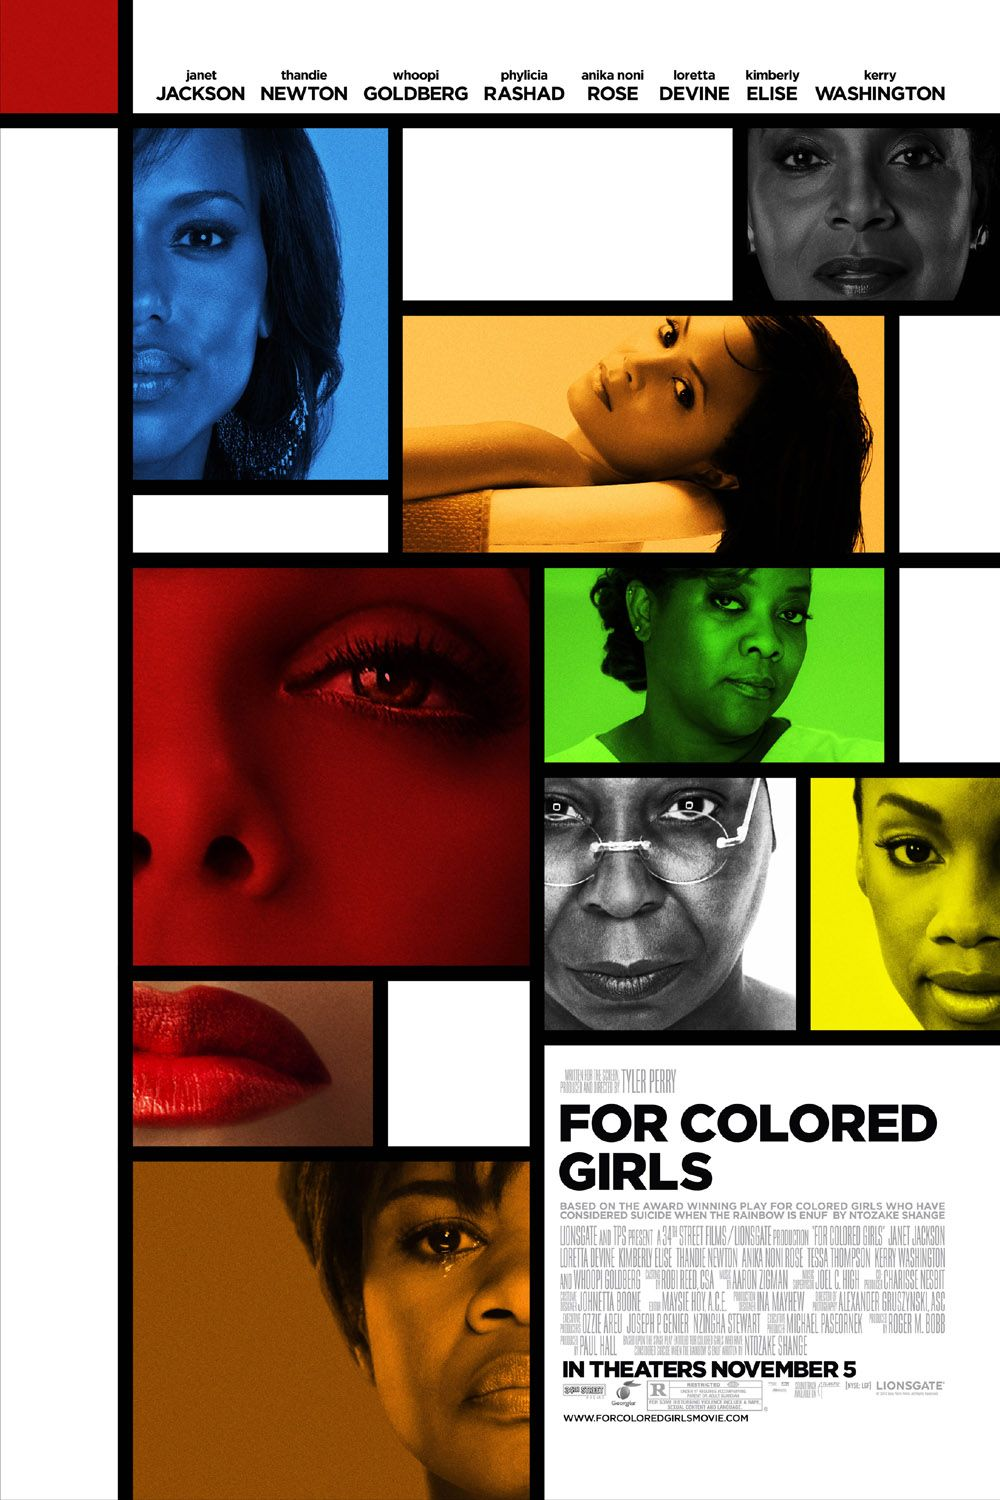 For Colored Girls Movieposter (2010) For colored girls